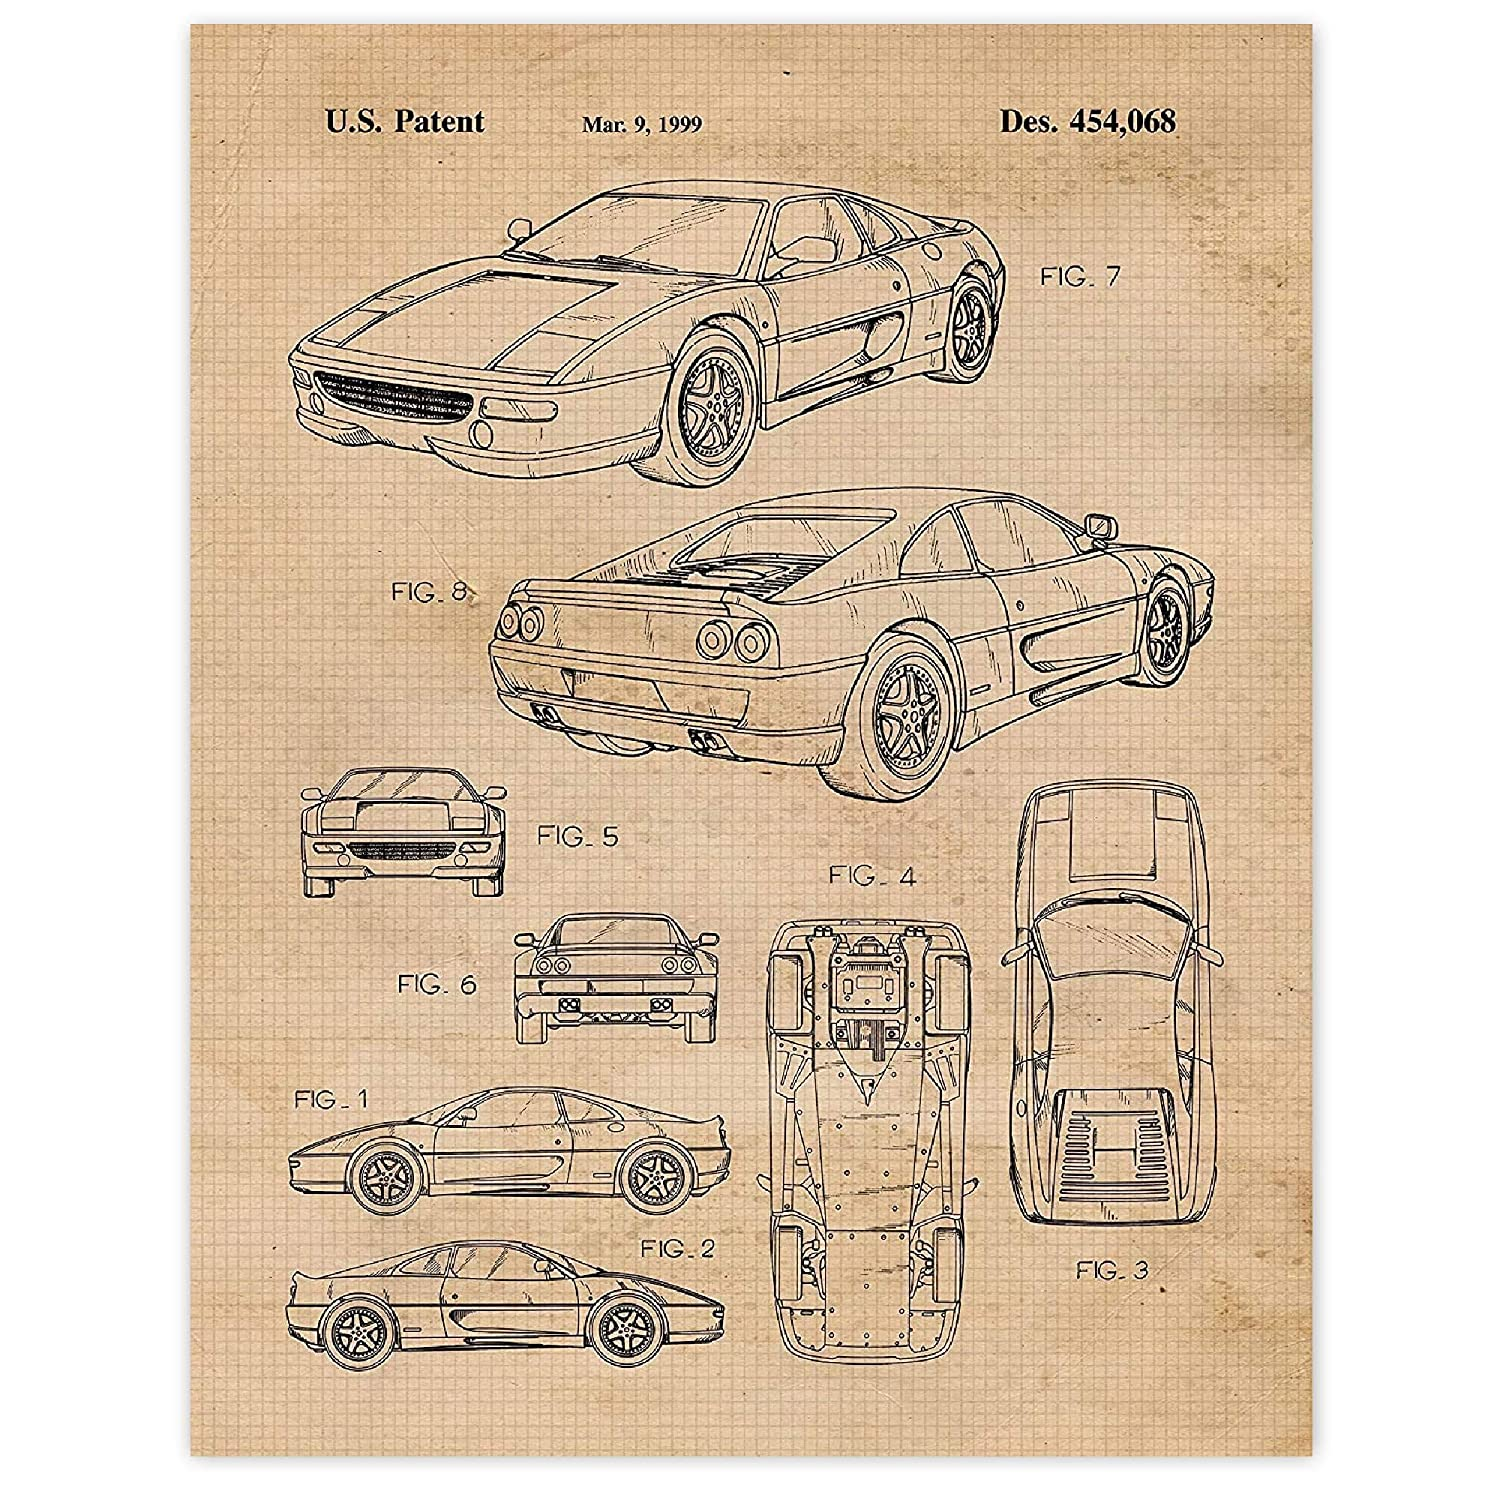 Amazon Com Vintage Ferrari F355 Patent Poster Prints Set Of 1 11x14 Unframed Photo Wall Art Decor Gifts Under 15 For Home Office Shop Garage Man Cave College Student Teacher Italy Cars